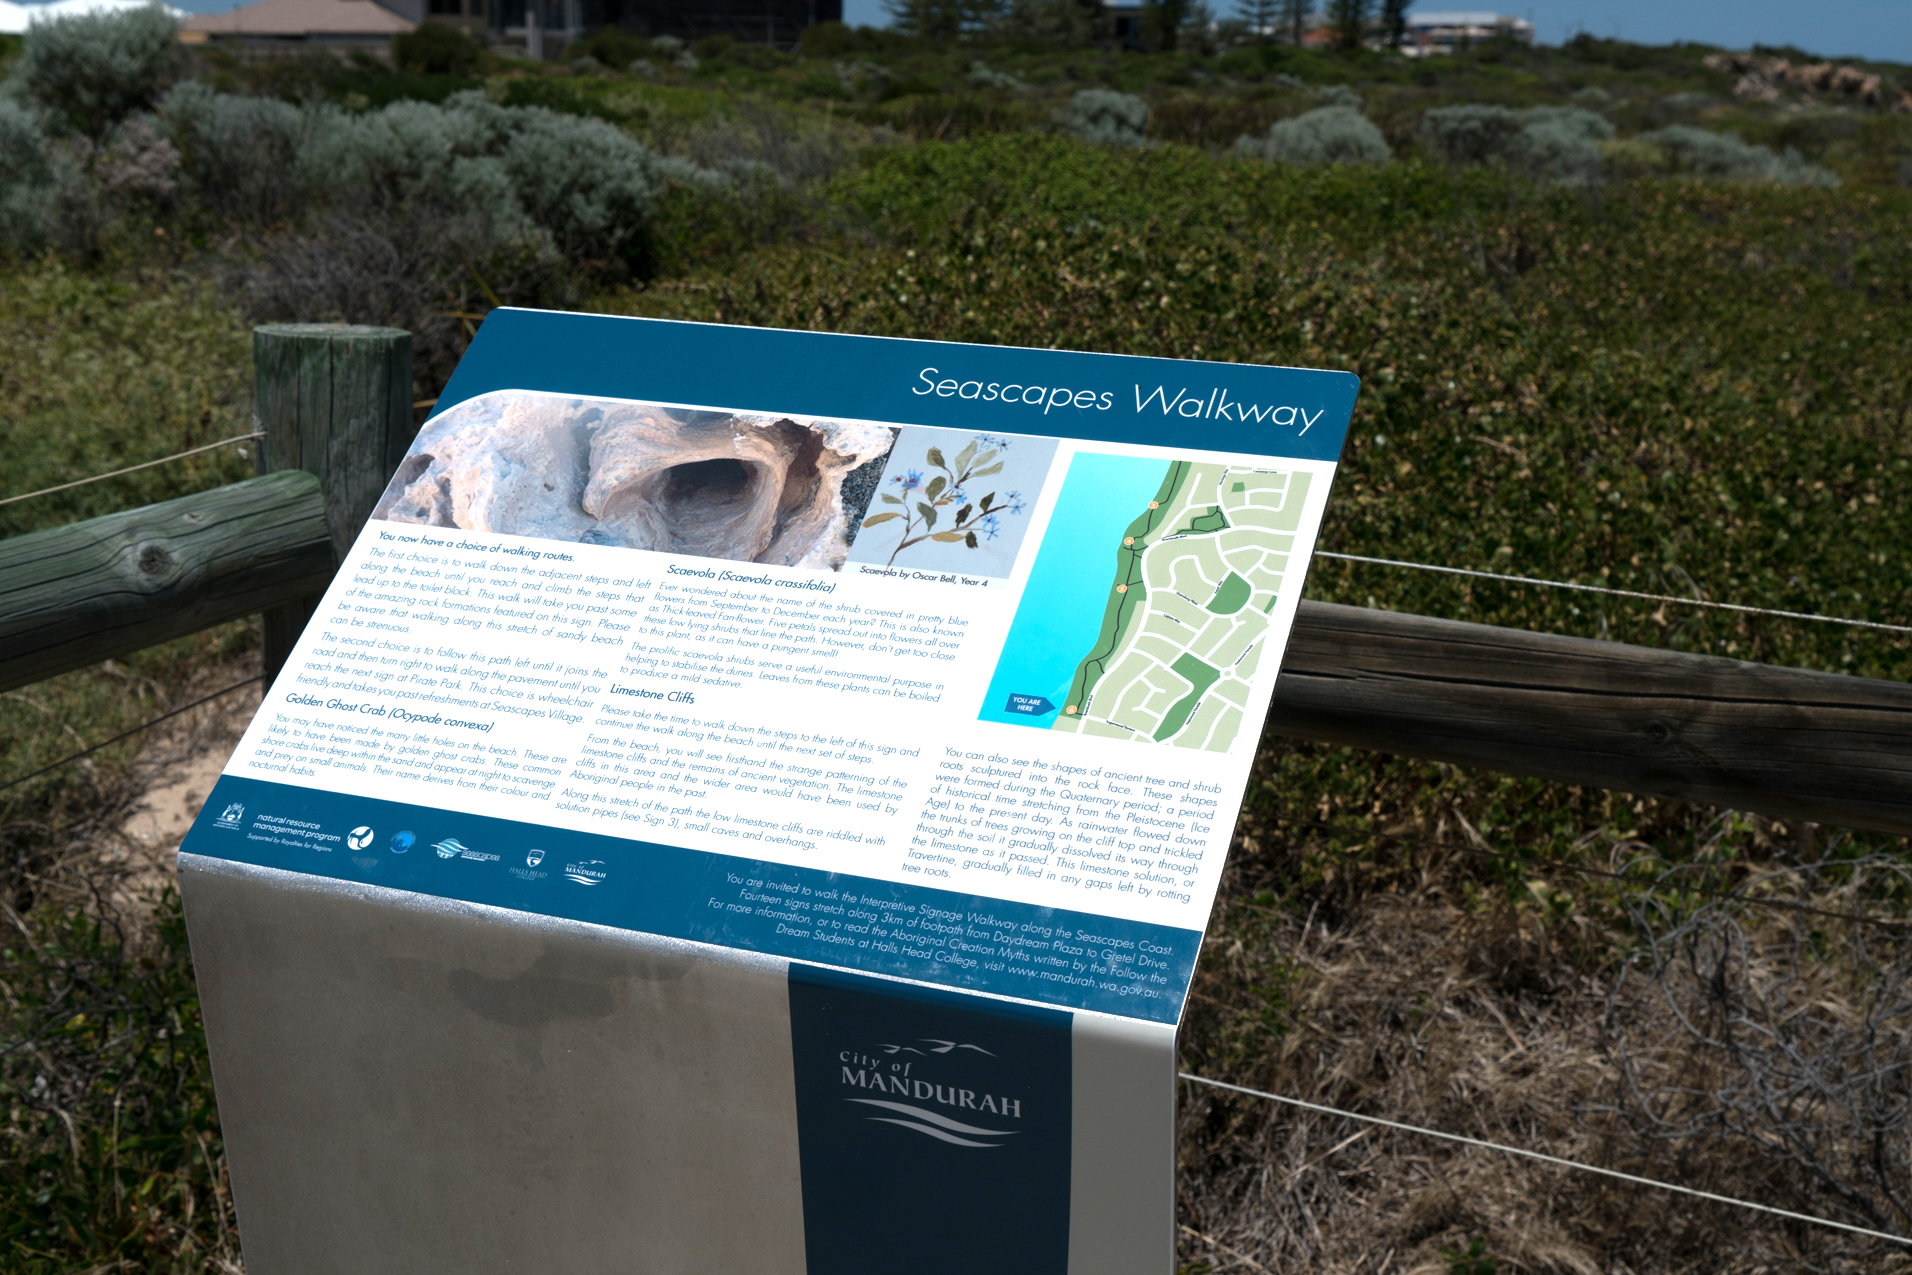 Plate 9: One of the interpretive signs on the the Seascapes Interpretive Walkway